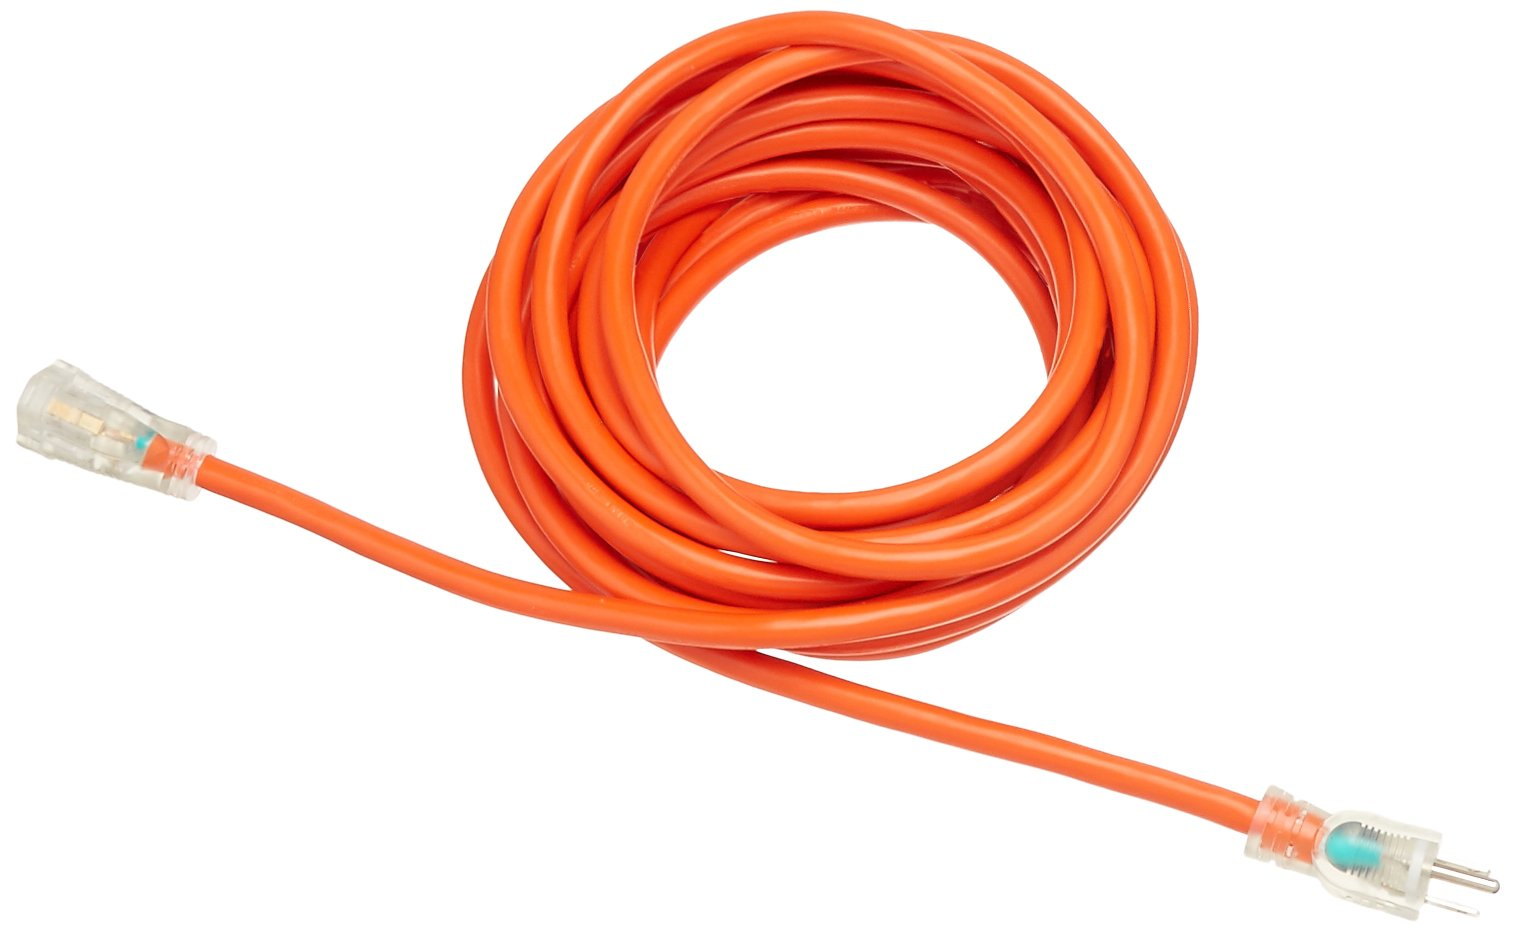 AmazonBasics 12/3 SJTW Heavy-Duty Lighted Extension Cord - 25 Feet (Orange) by AmazonBasics